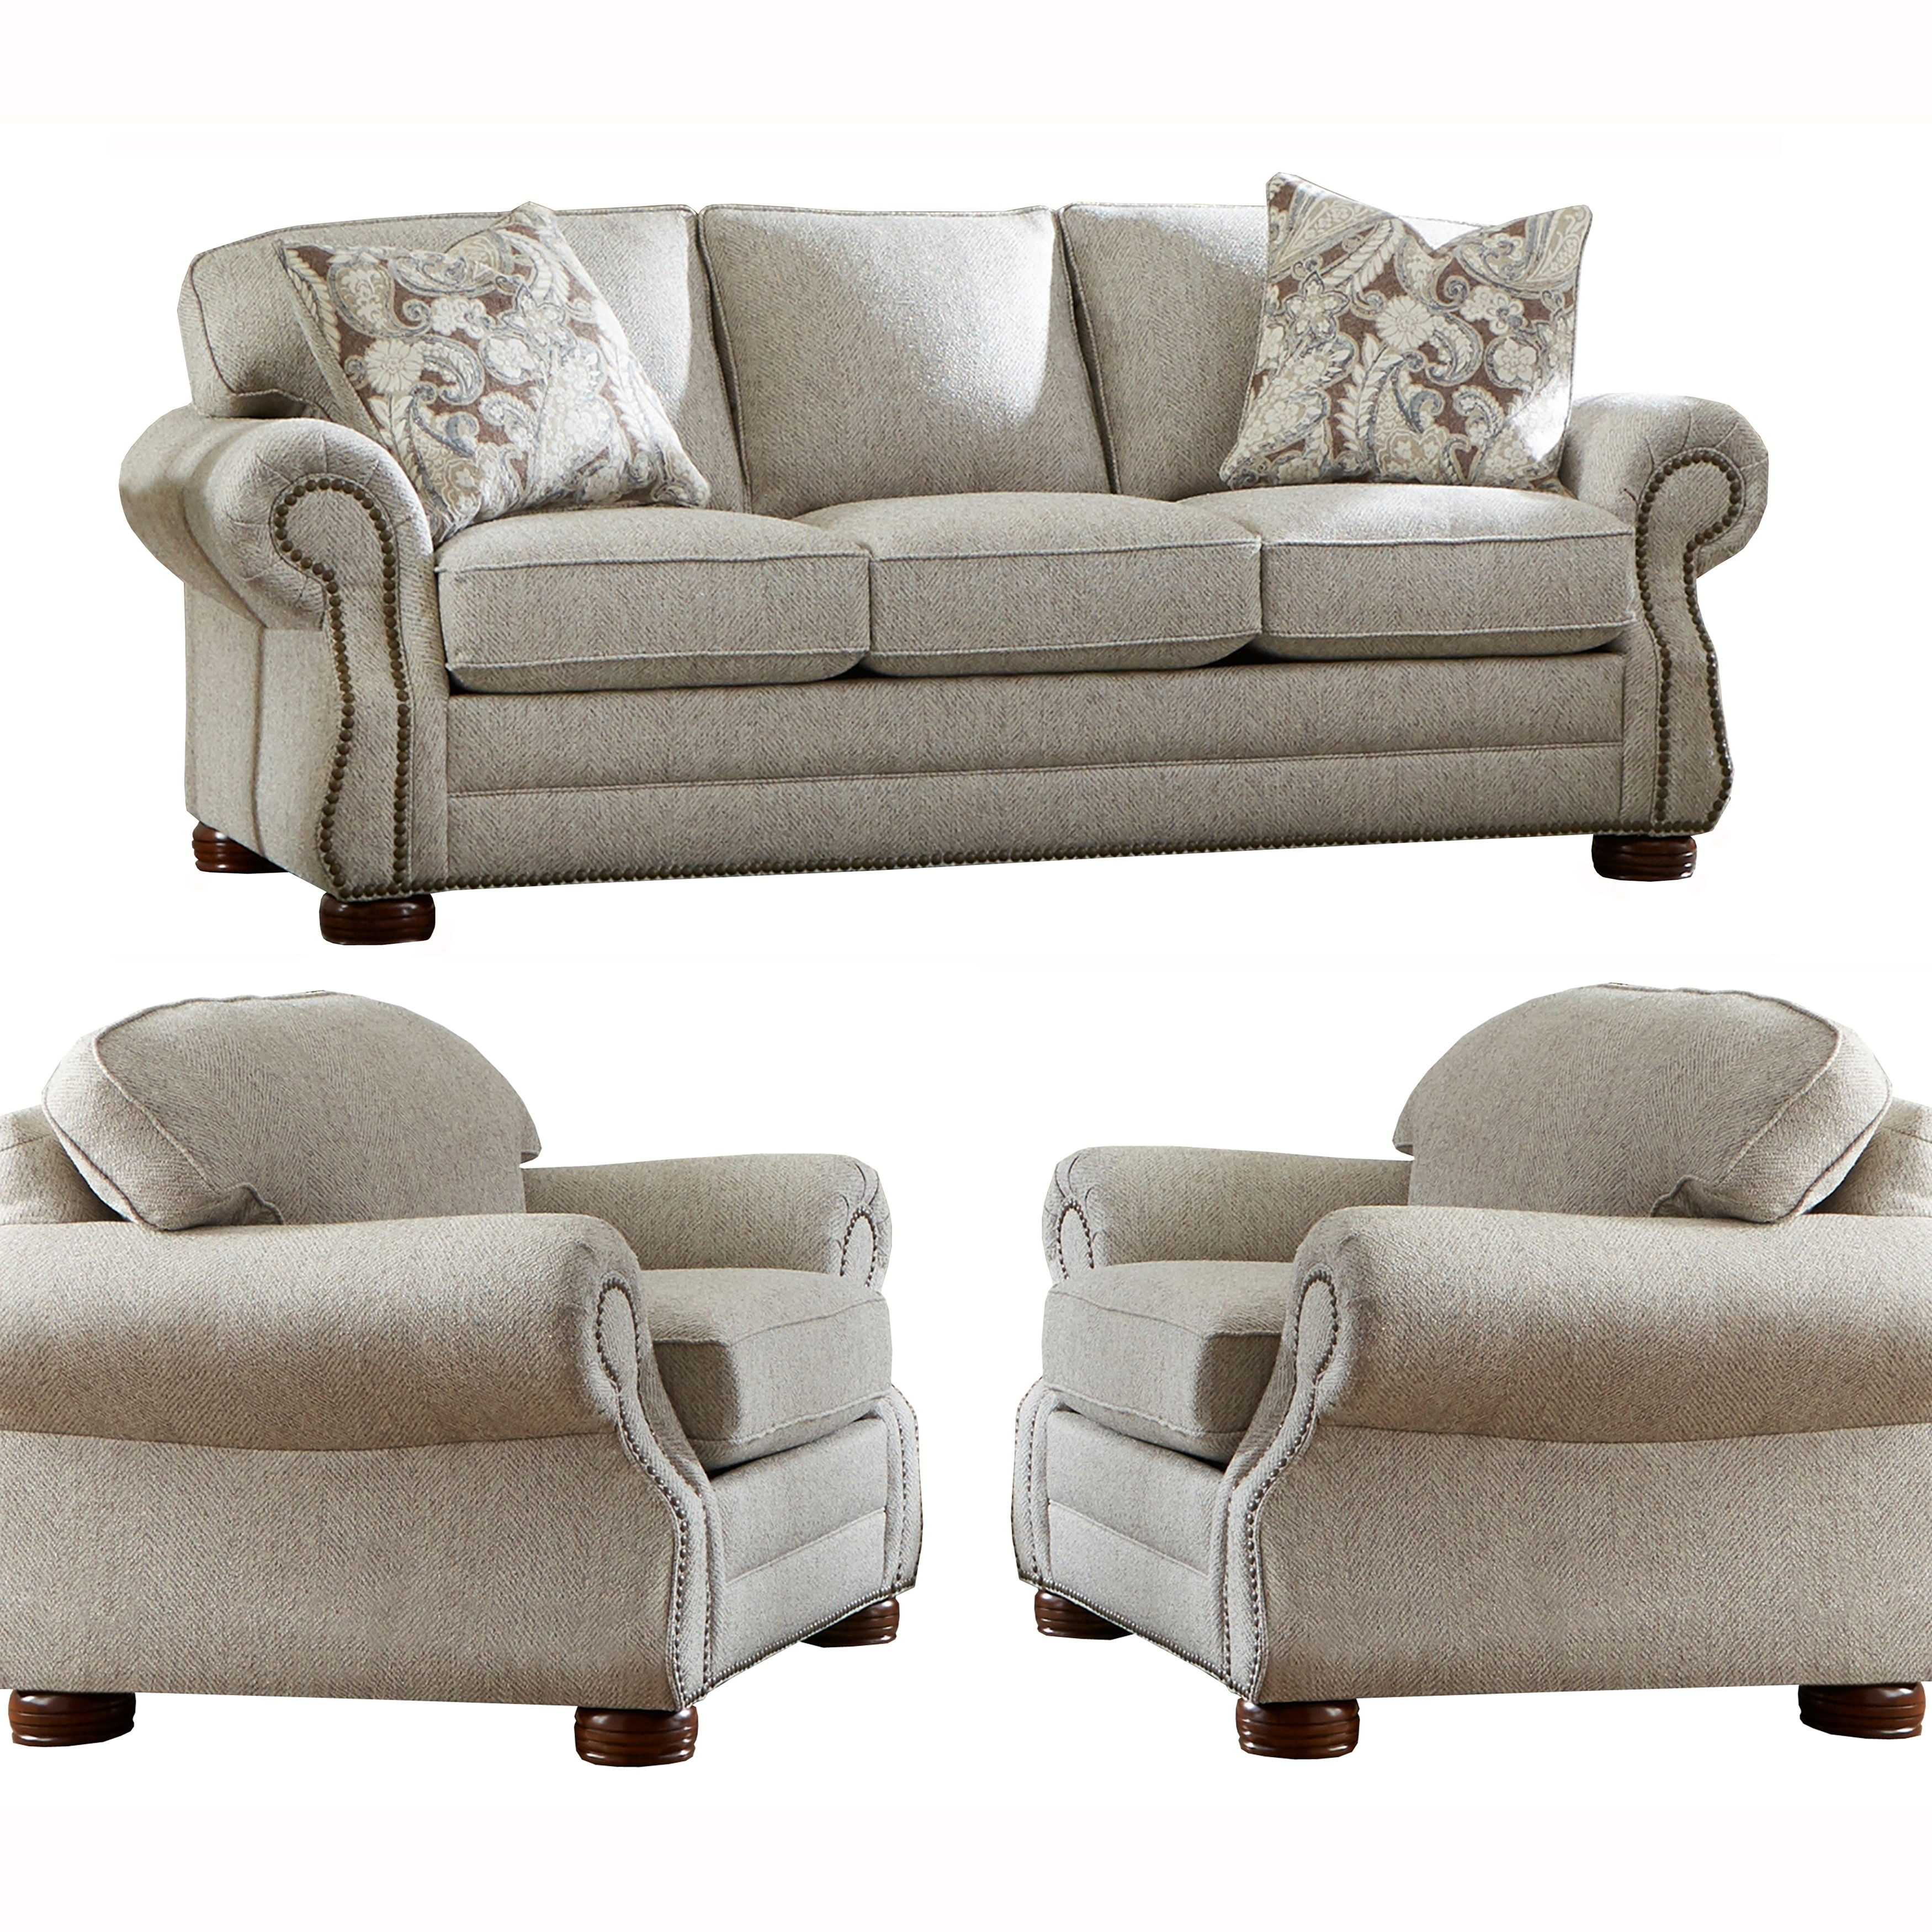 Taupe Fabric Sofa Bed And Two Chairs